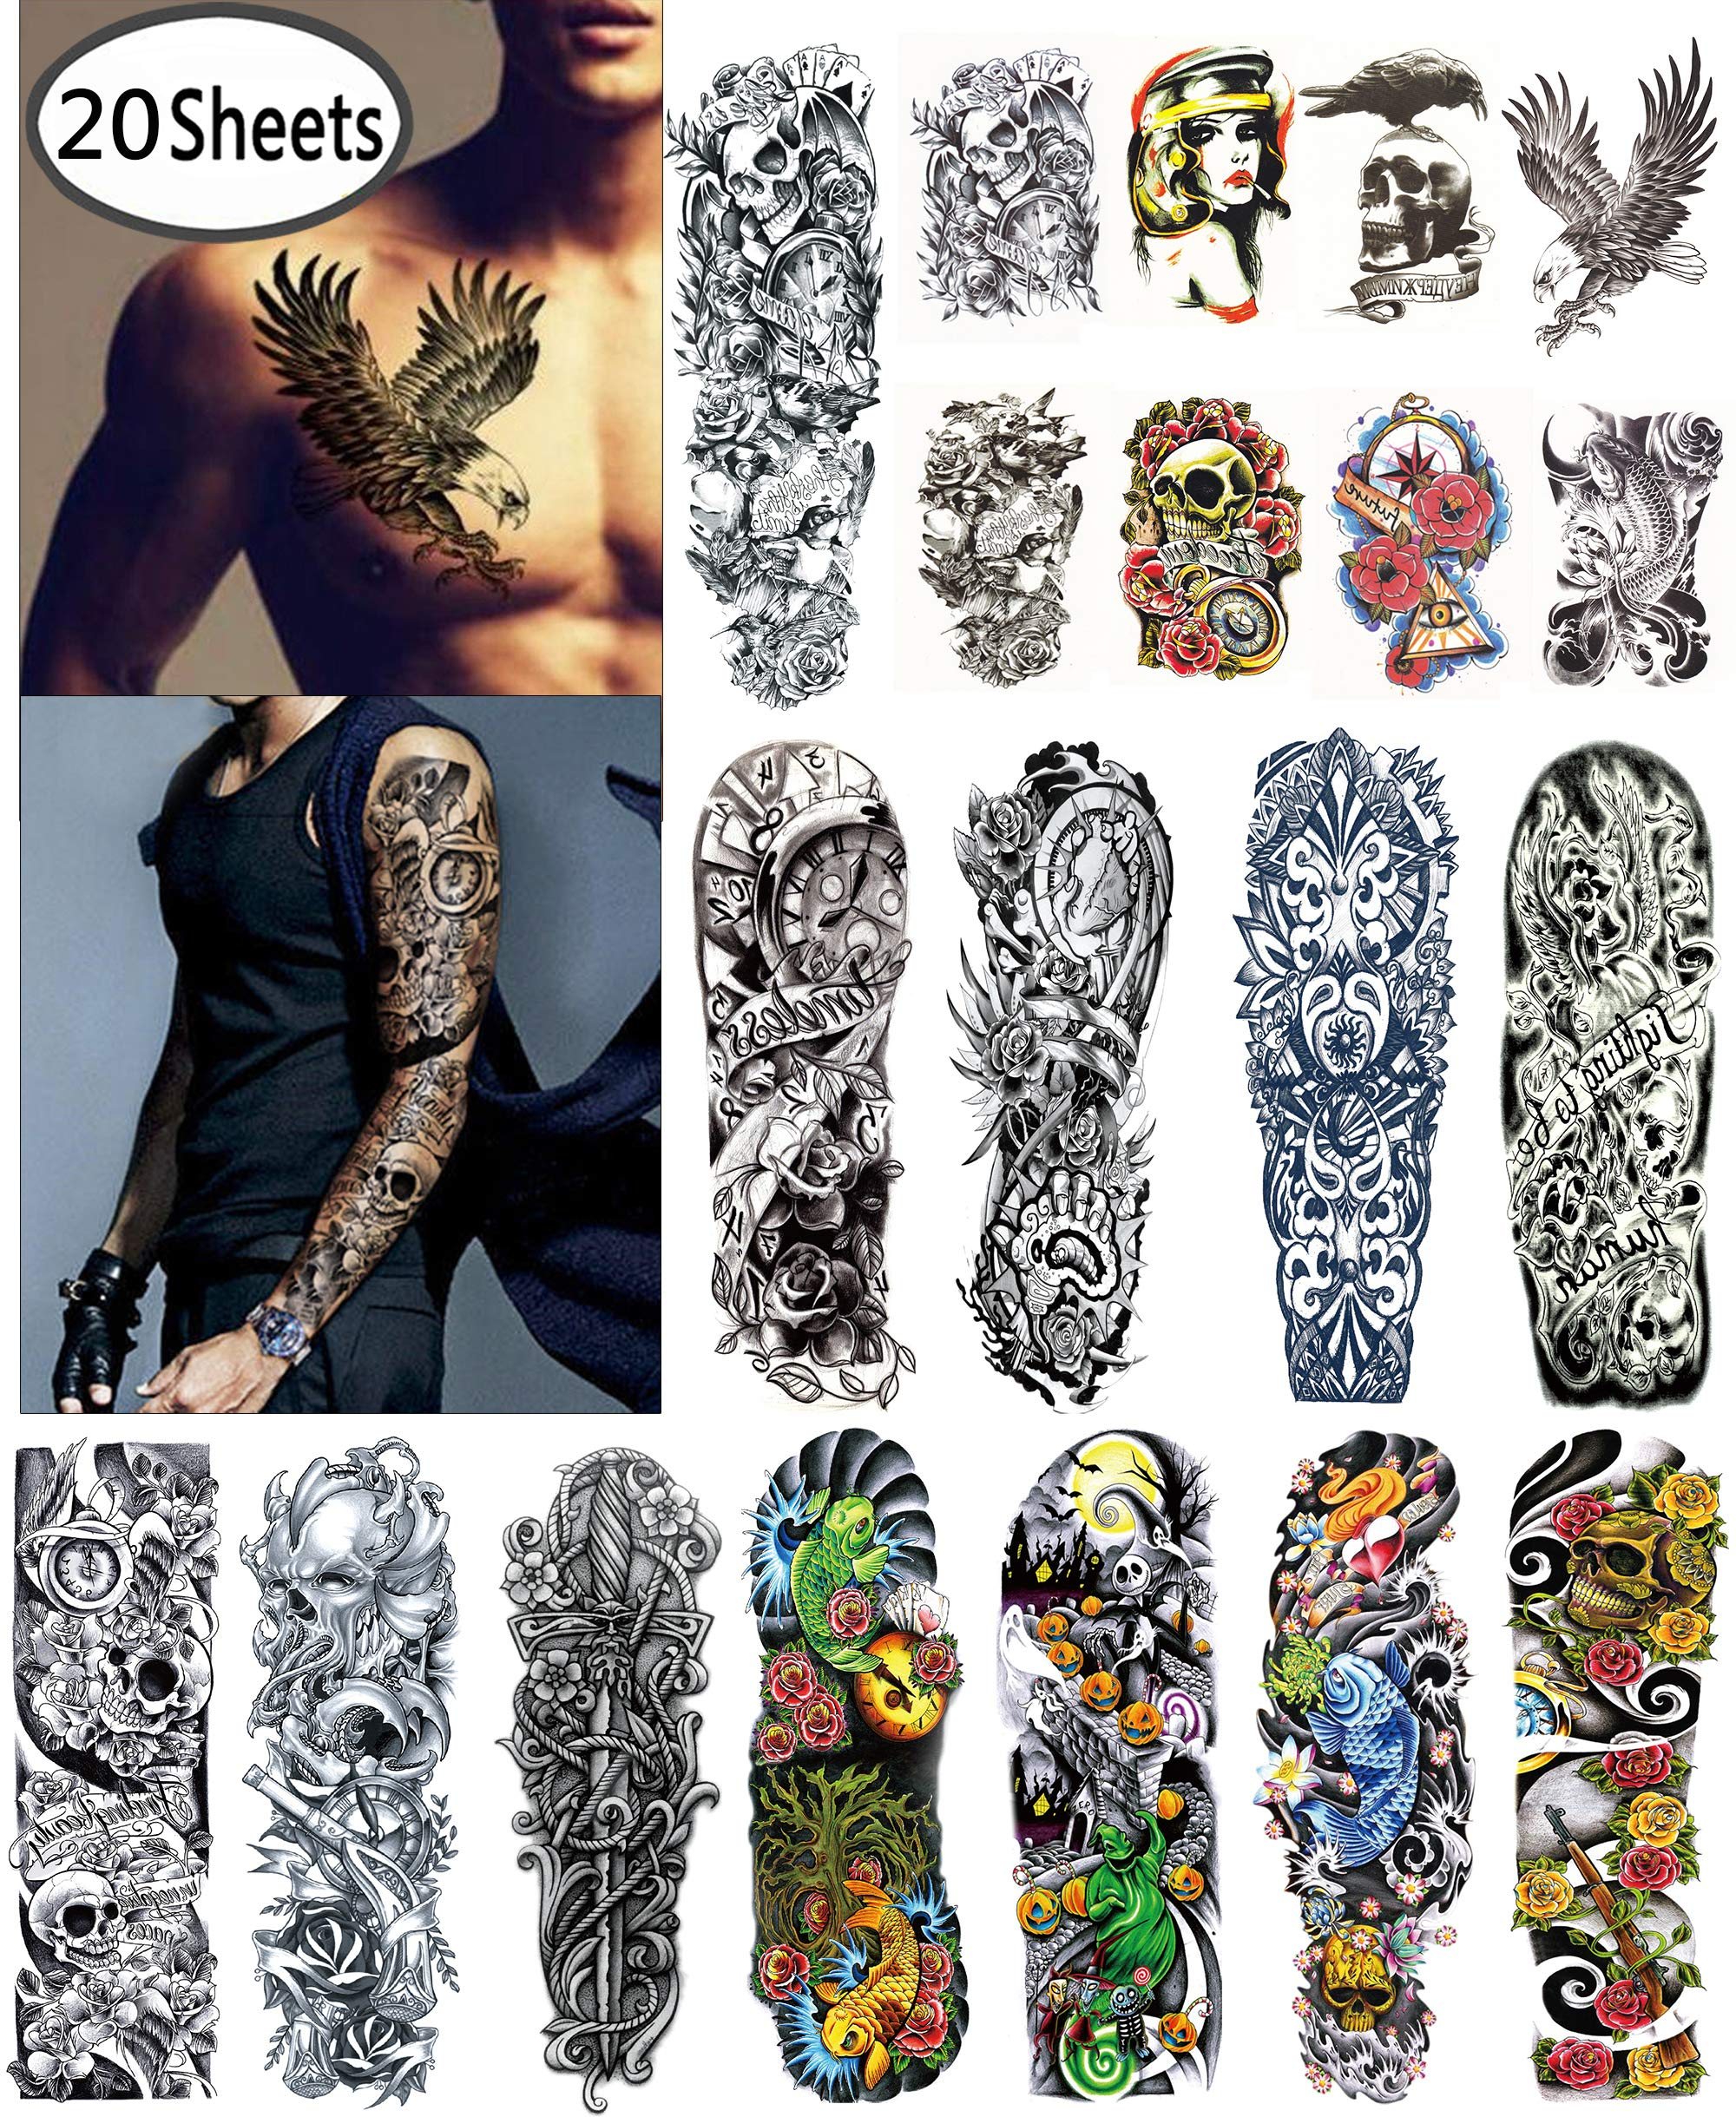 9bc50d30c DaLin Extra Large Temporary Tattoos Full Arm and Half Arm Tattoo Sleeves  for Men Women 20